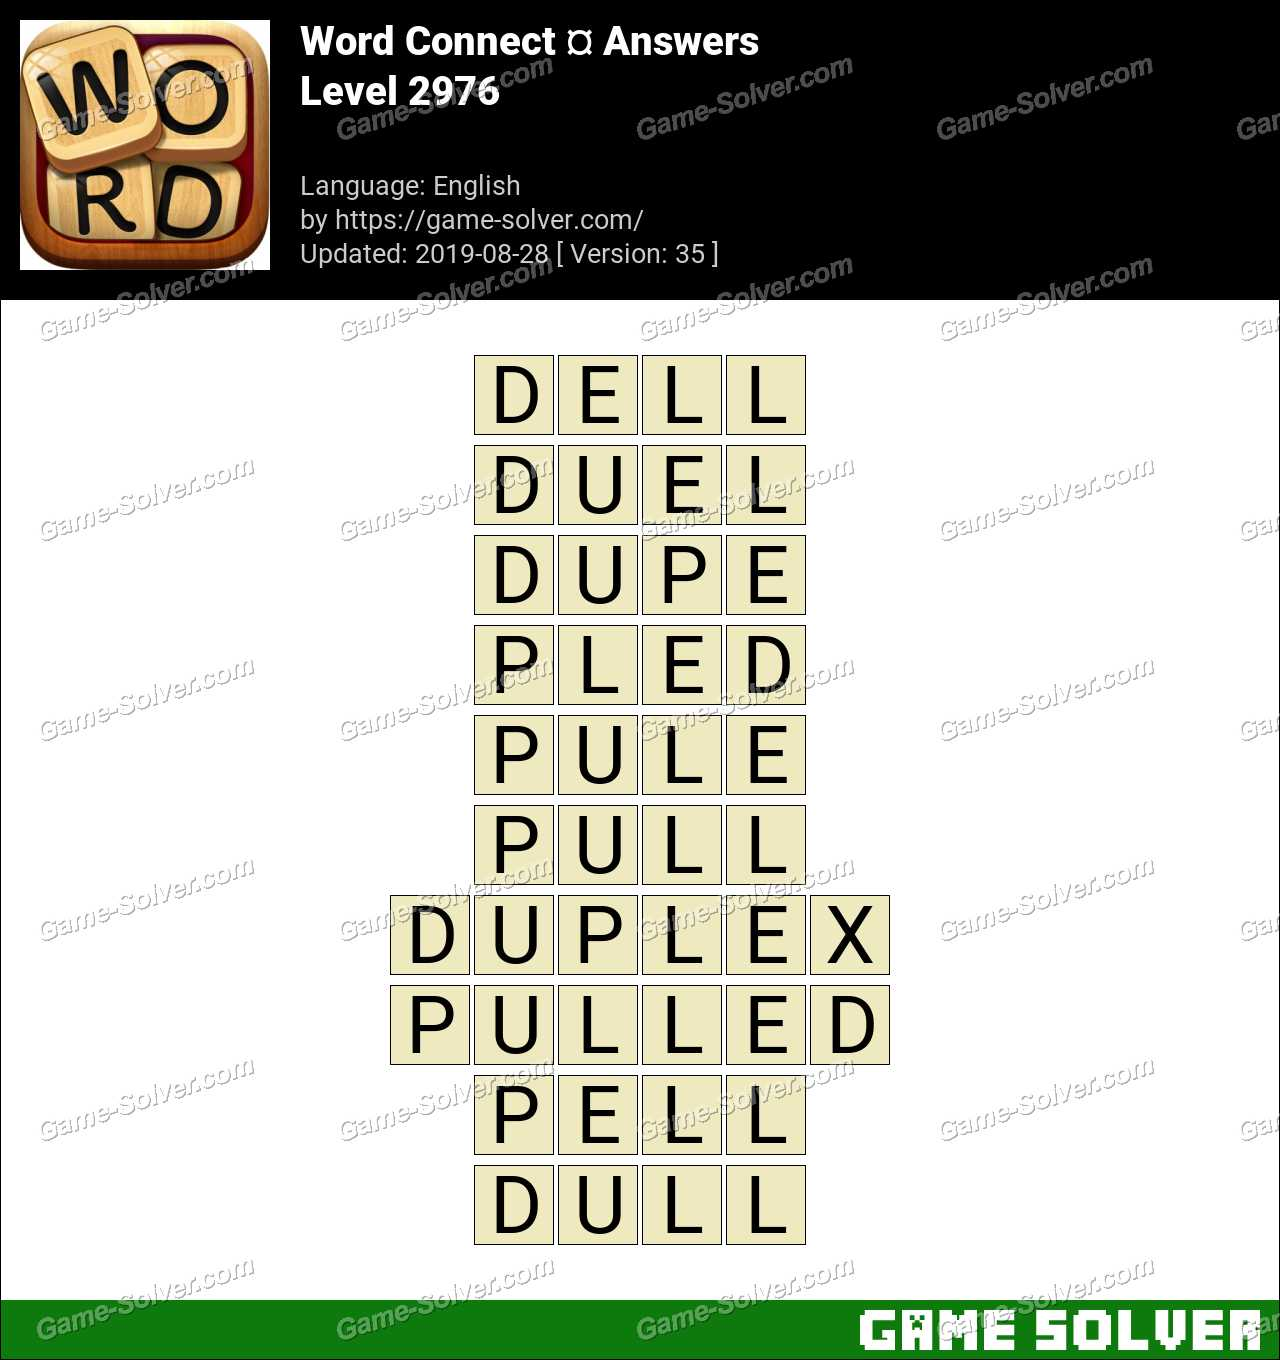 Word Connect Level 2976 Answers